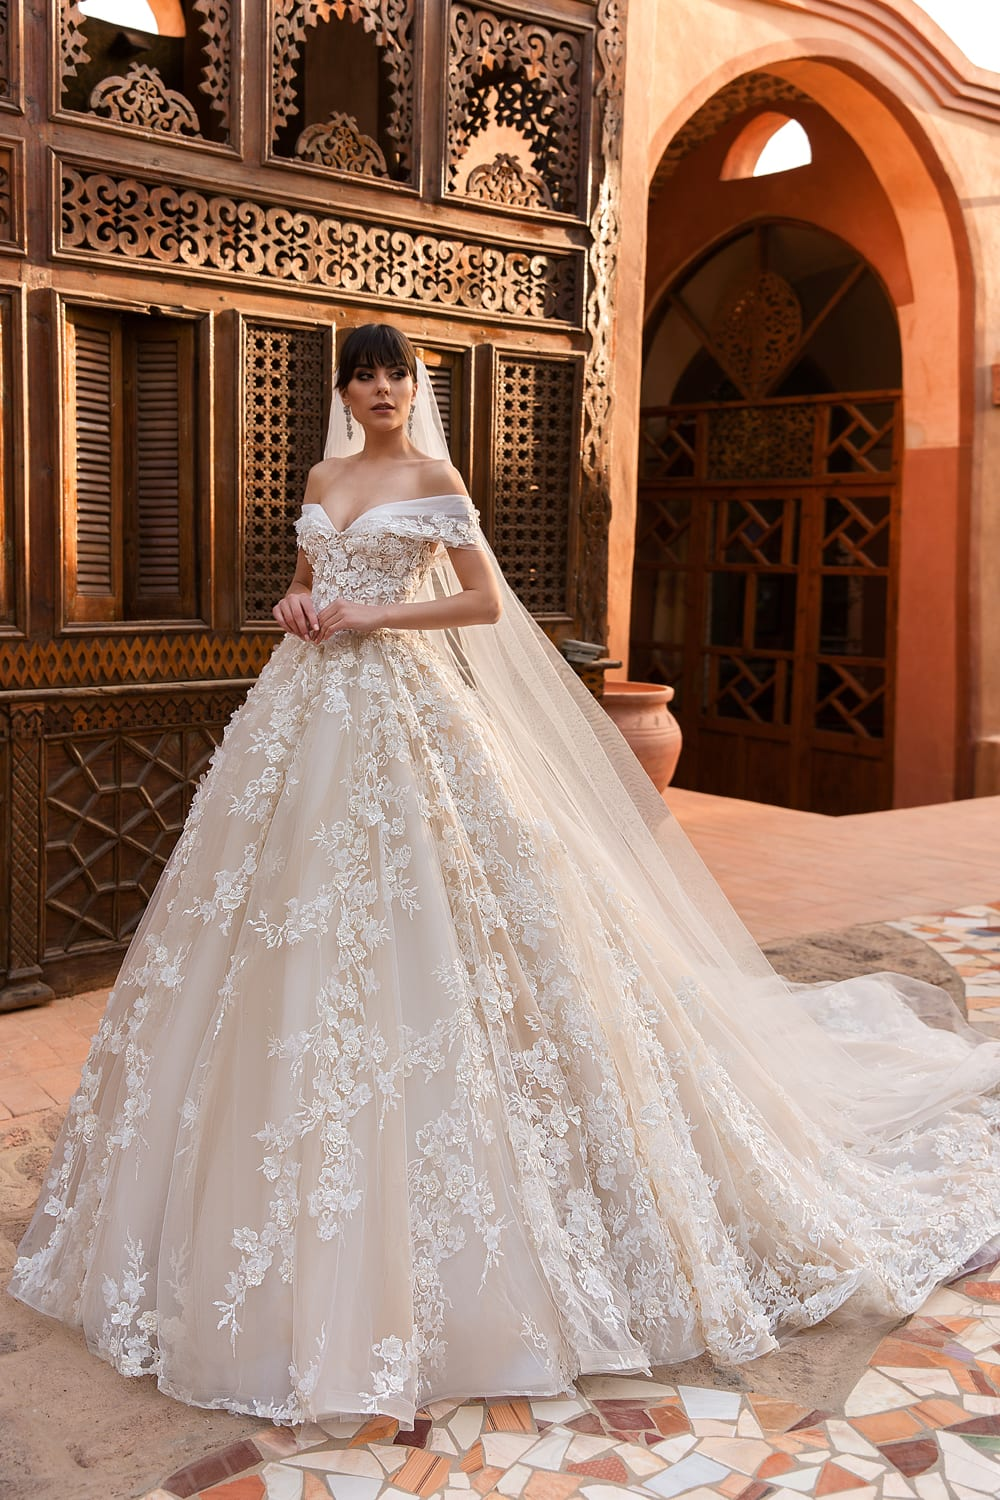 Cool Wedding Outfit Gown For Women